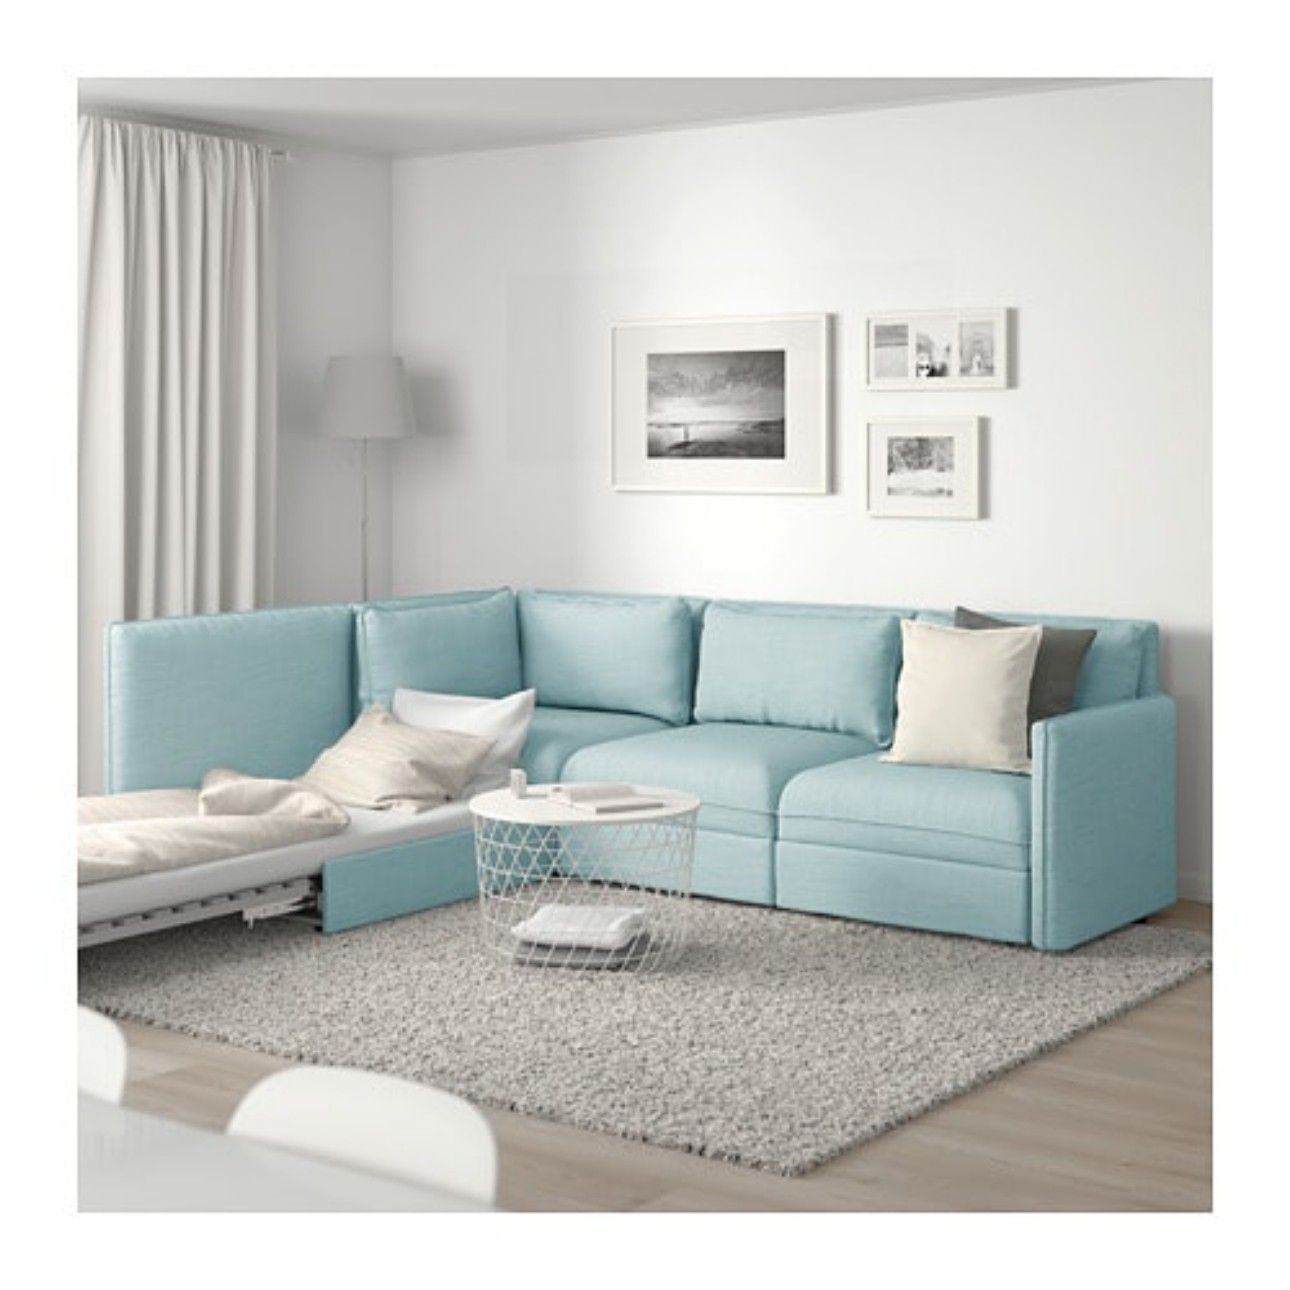 For the guest room/craft room Modular corner sofa, Ikea